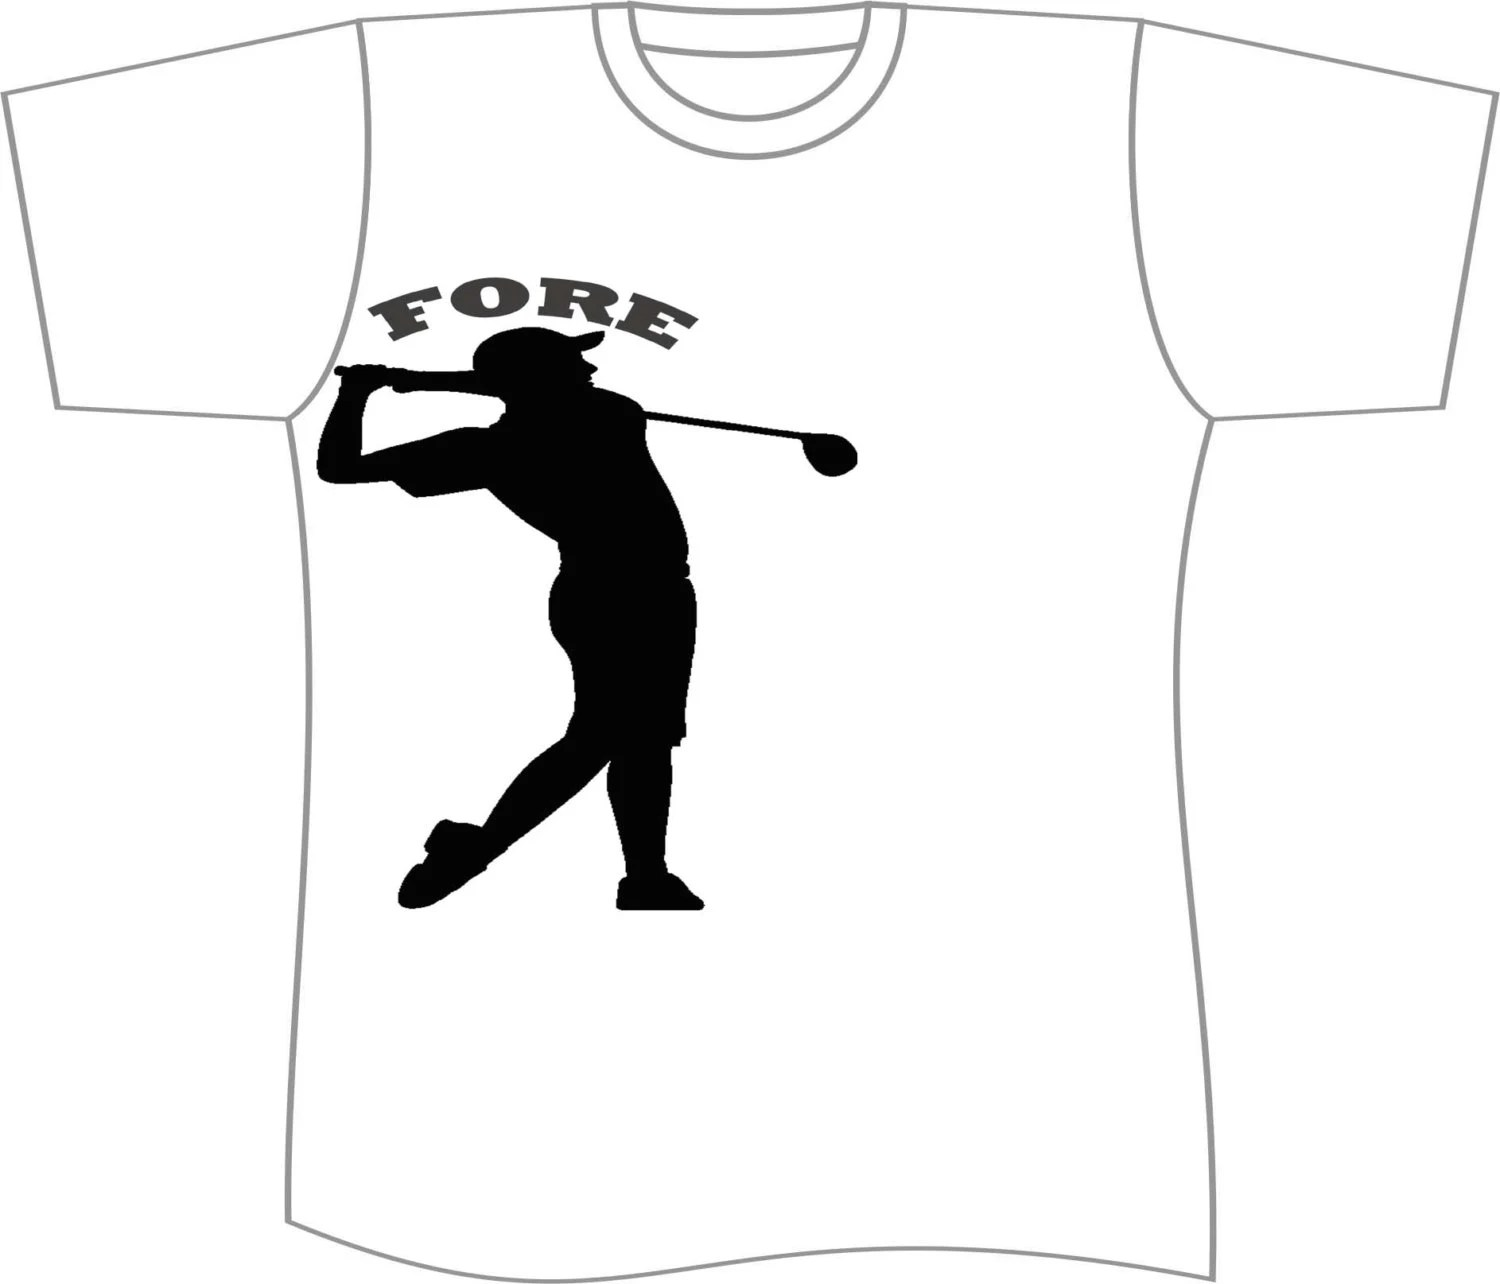 Items similar to Golf driver cover on Etsy